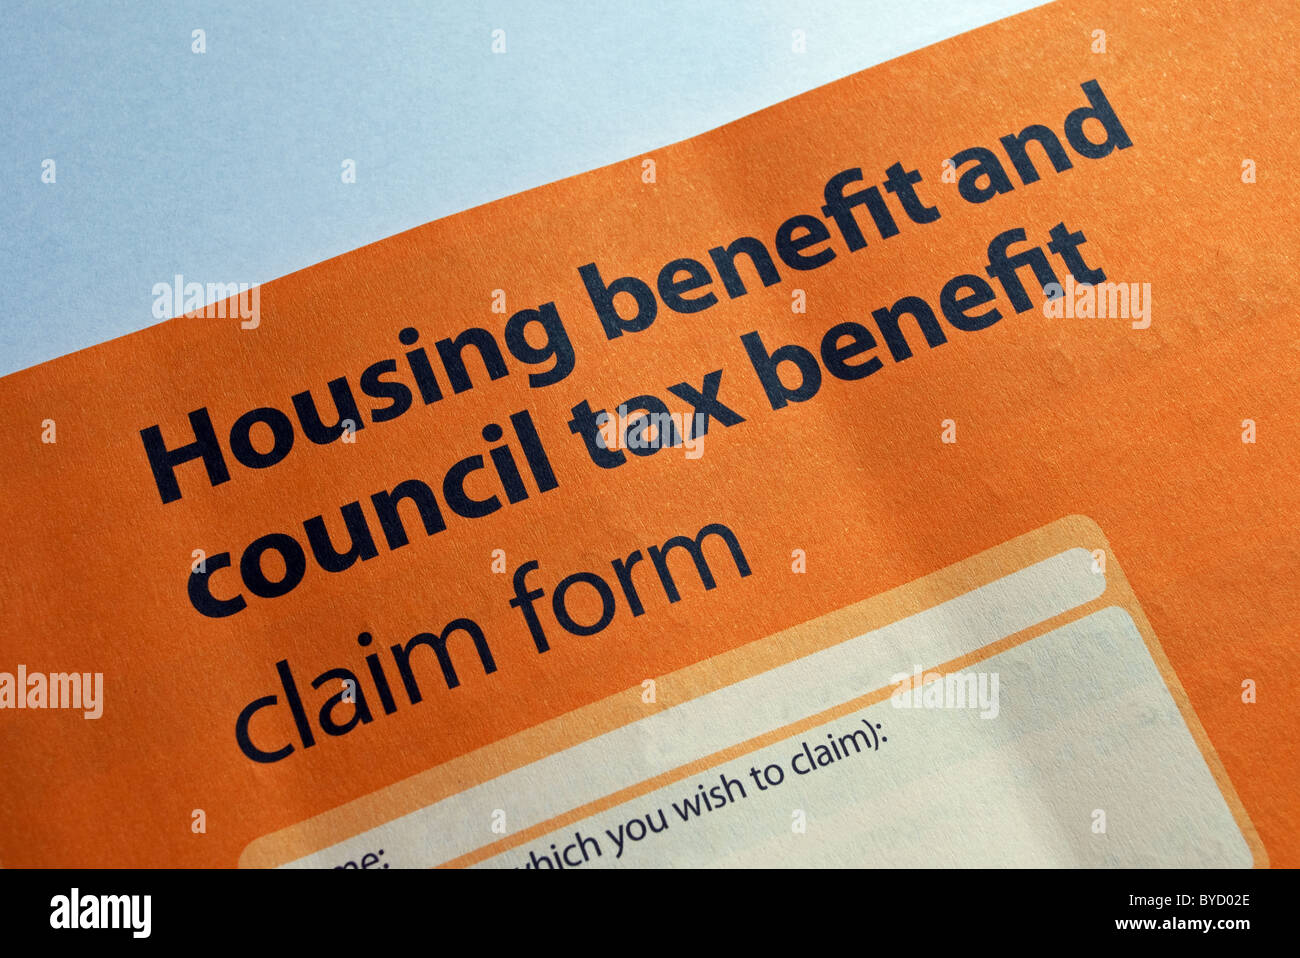 Housing Benefit Form | A Housing And Council Tax Benefit Form Stock Photo 34091526 Alamy